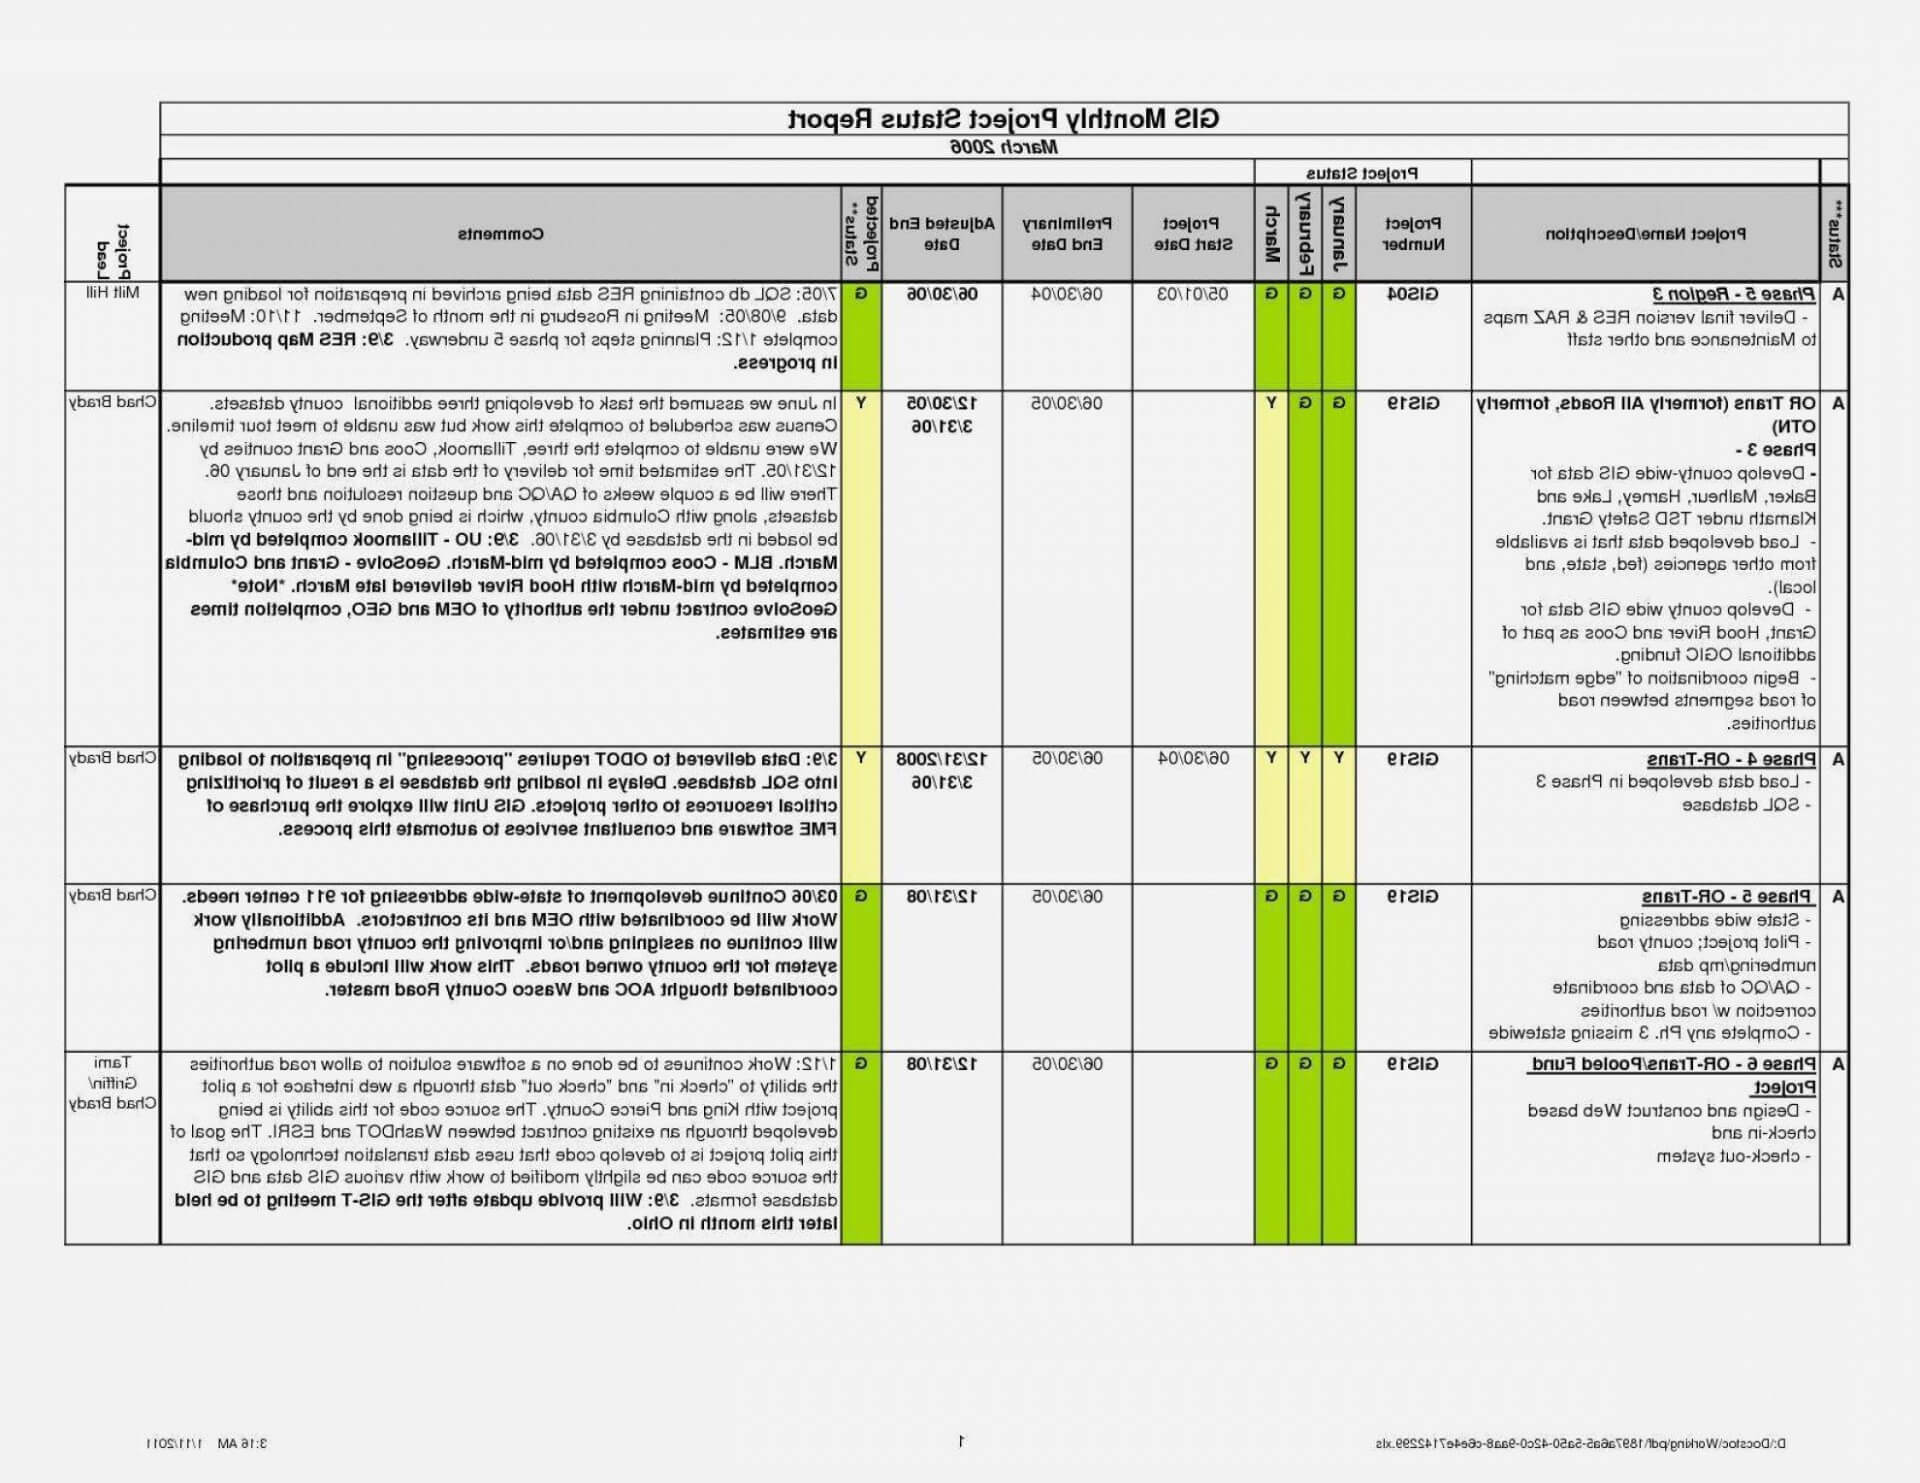 011 Project Progress Report Template Excel Ideas Management With Regard To Project Manager Status Report Template